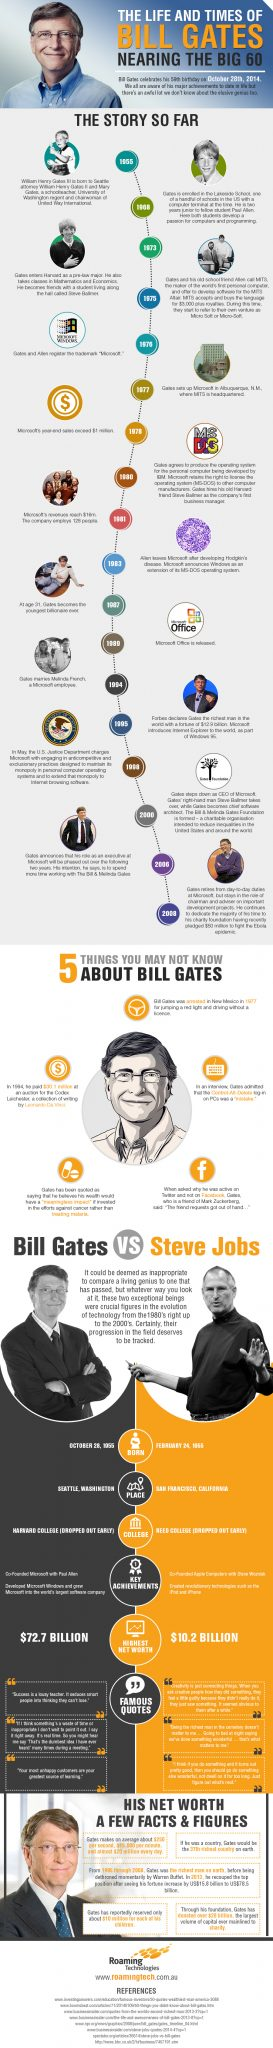 Roaming Technologies IG Bill Gates The Life and Times of Bill Gates   Nearing the Big 60